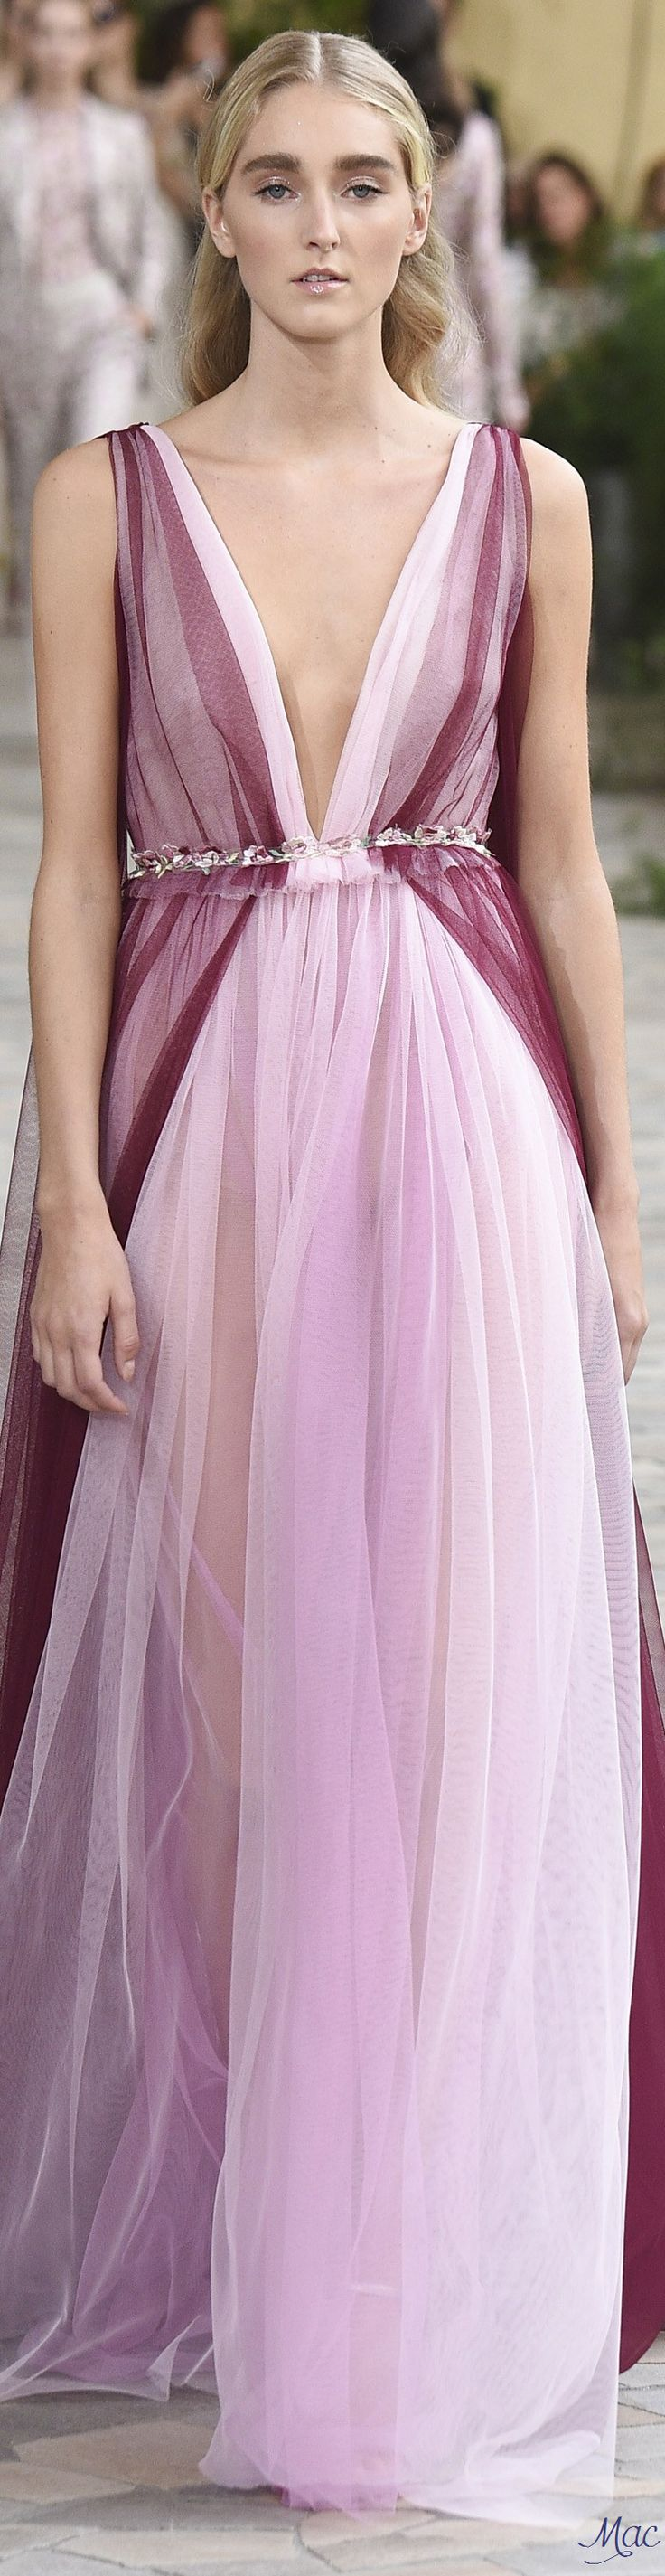 Spring 2017 Ready-to-Wear Luisa Beccaria jαɢlαdy